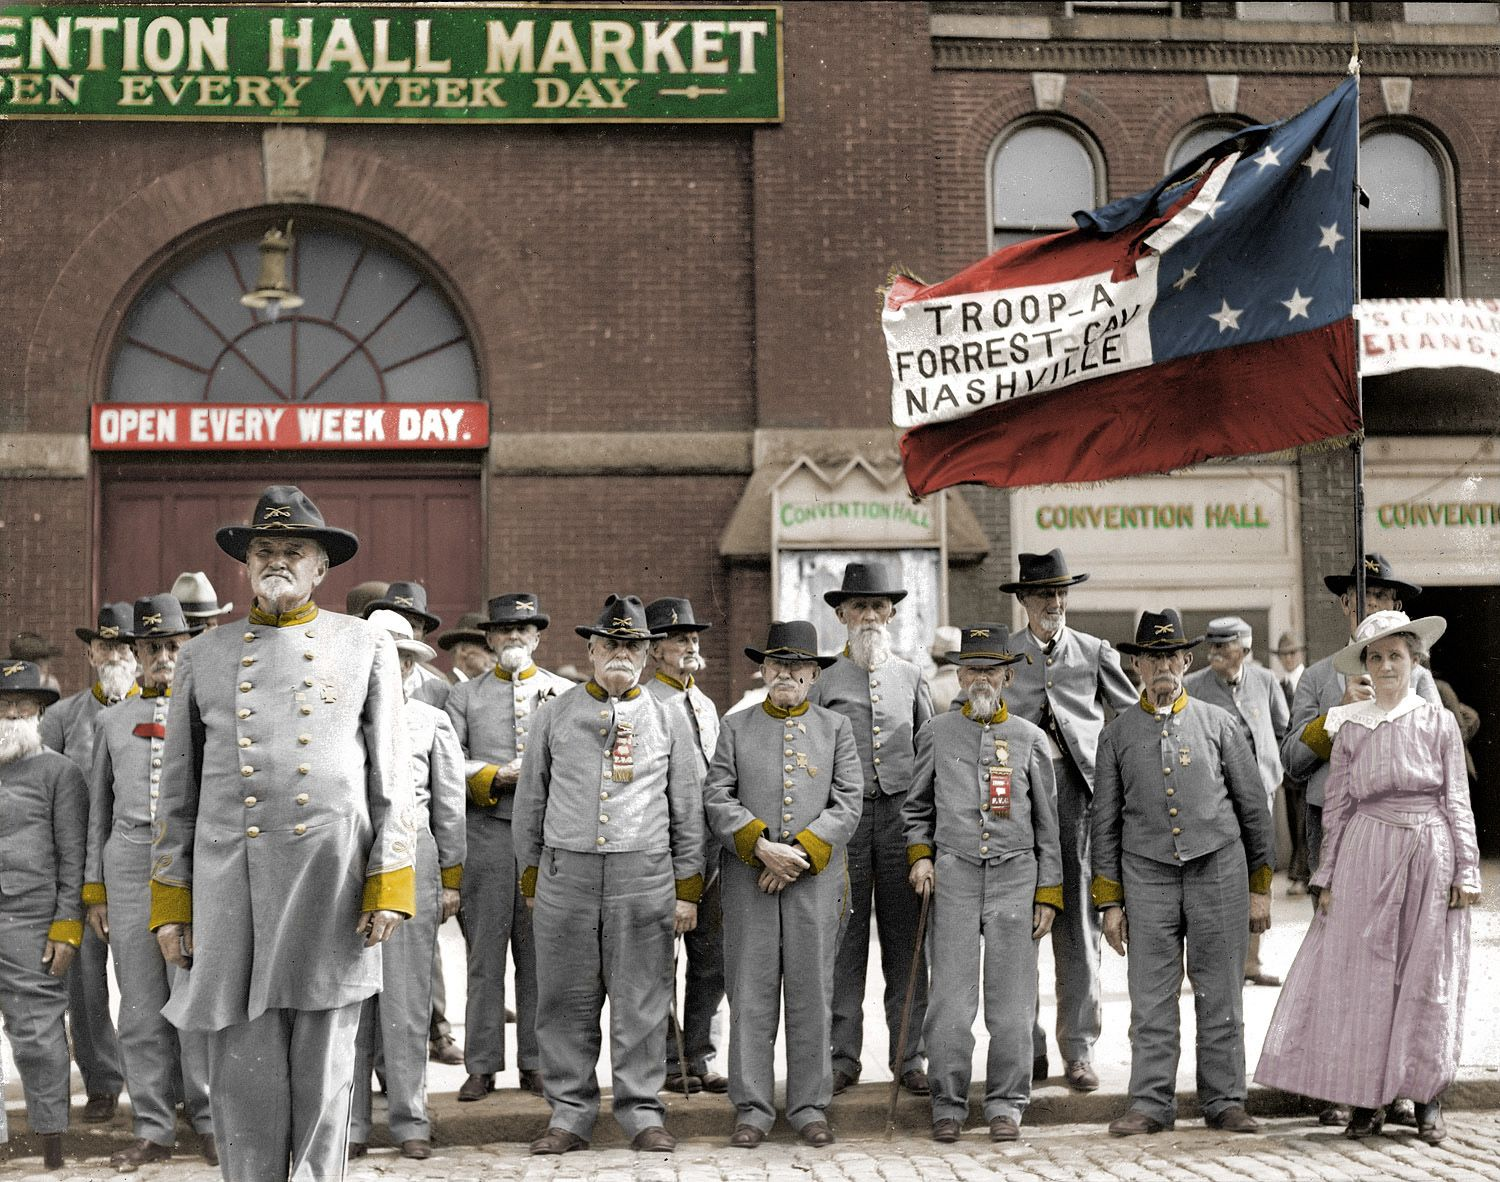 Troop A Forrest Camp, Nashville, Tennessee 1917 Confederate Veterans Reunion (colorized)